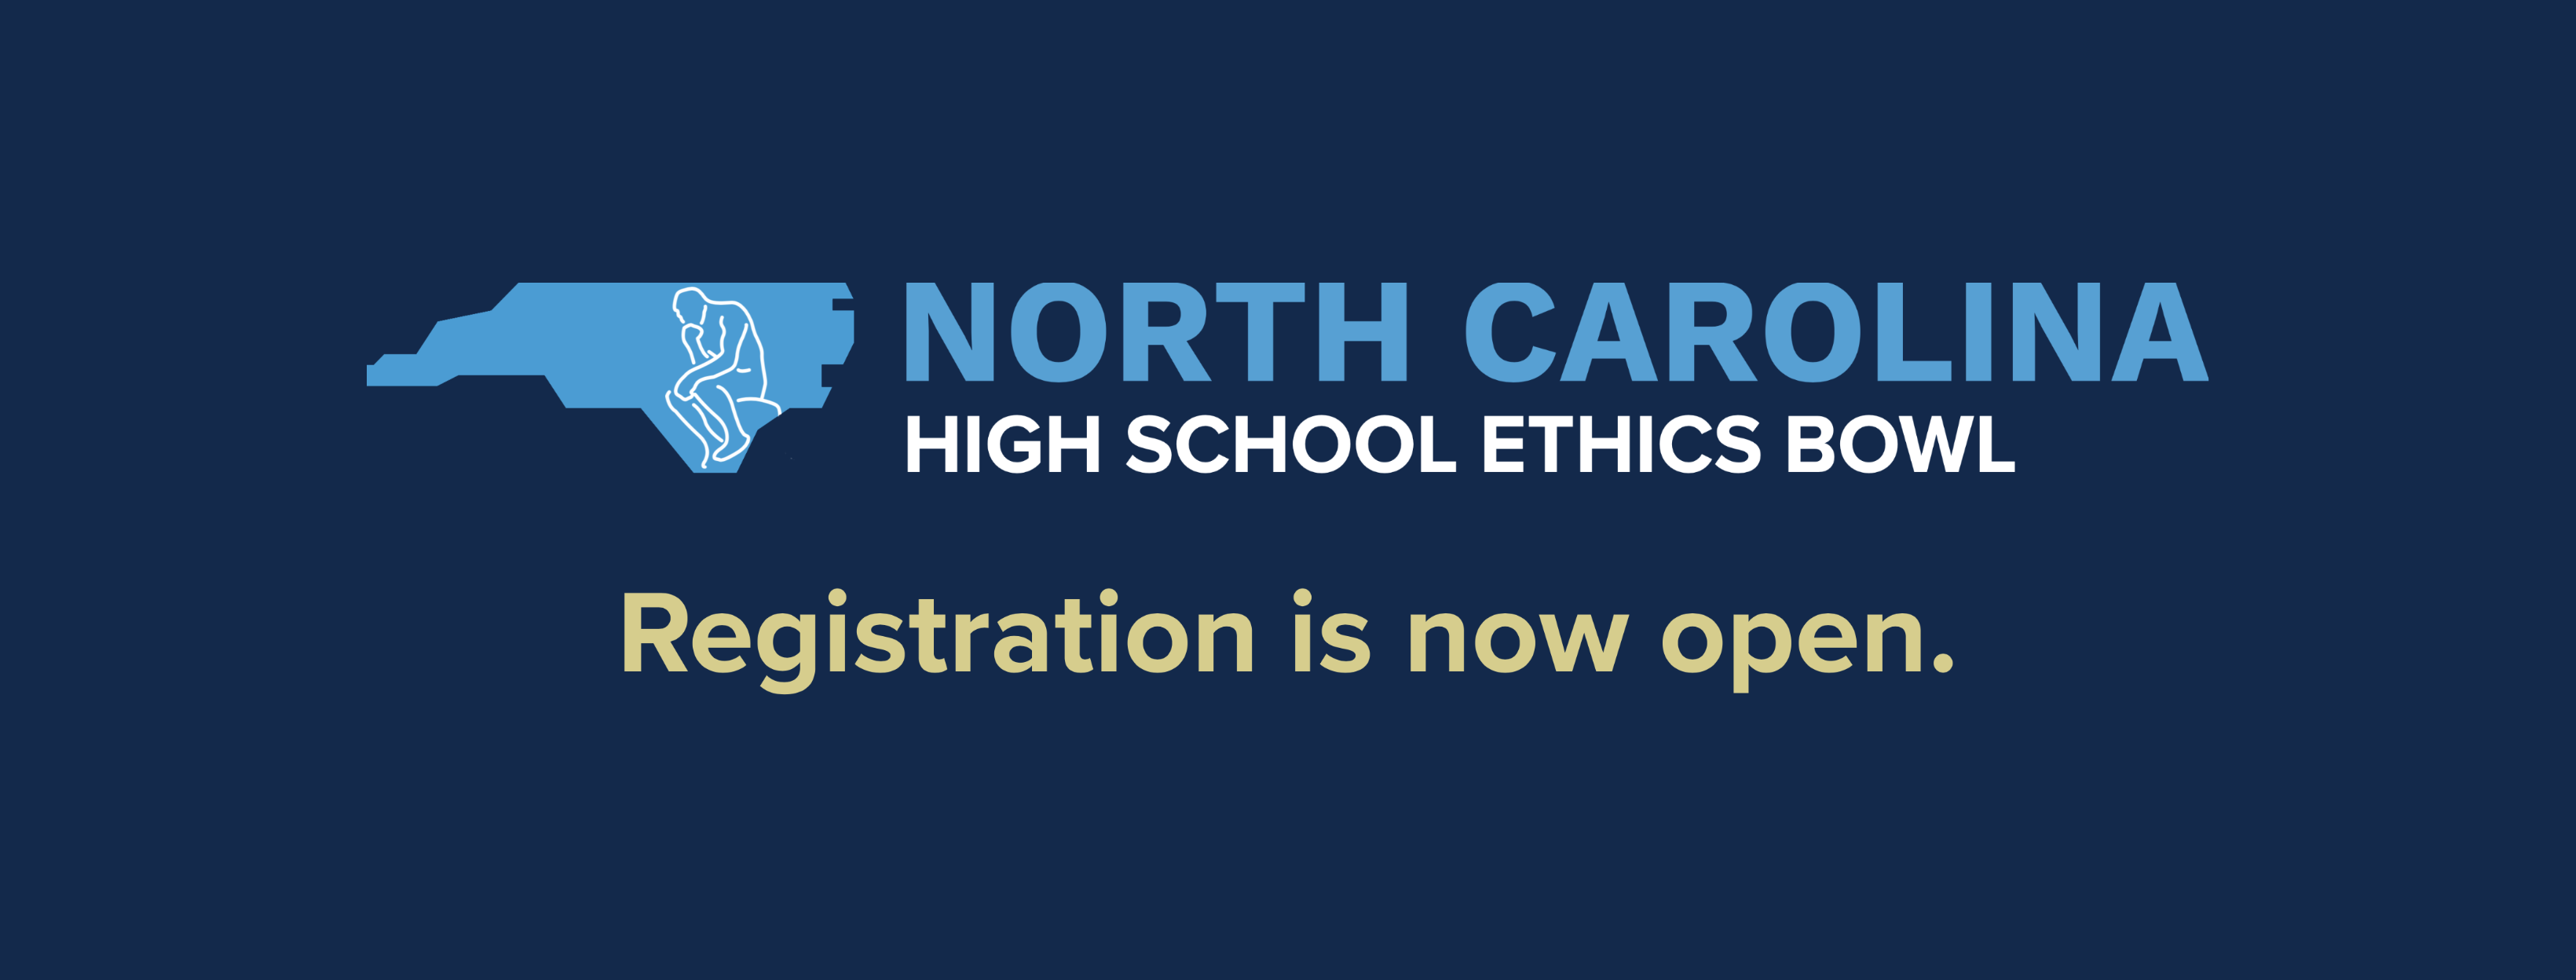 NCHSEB Launch Banner